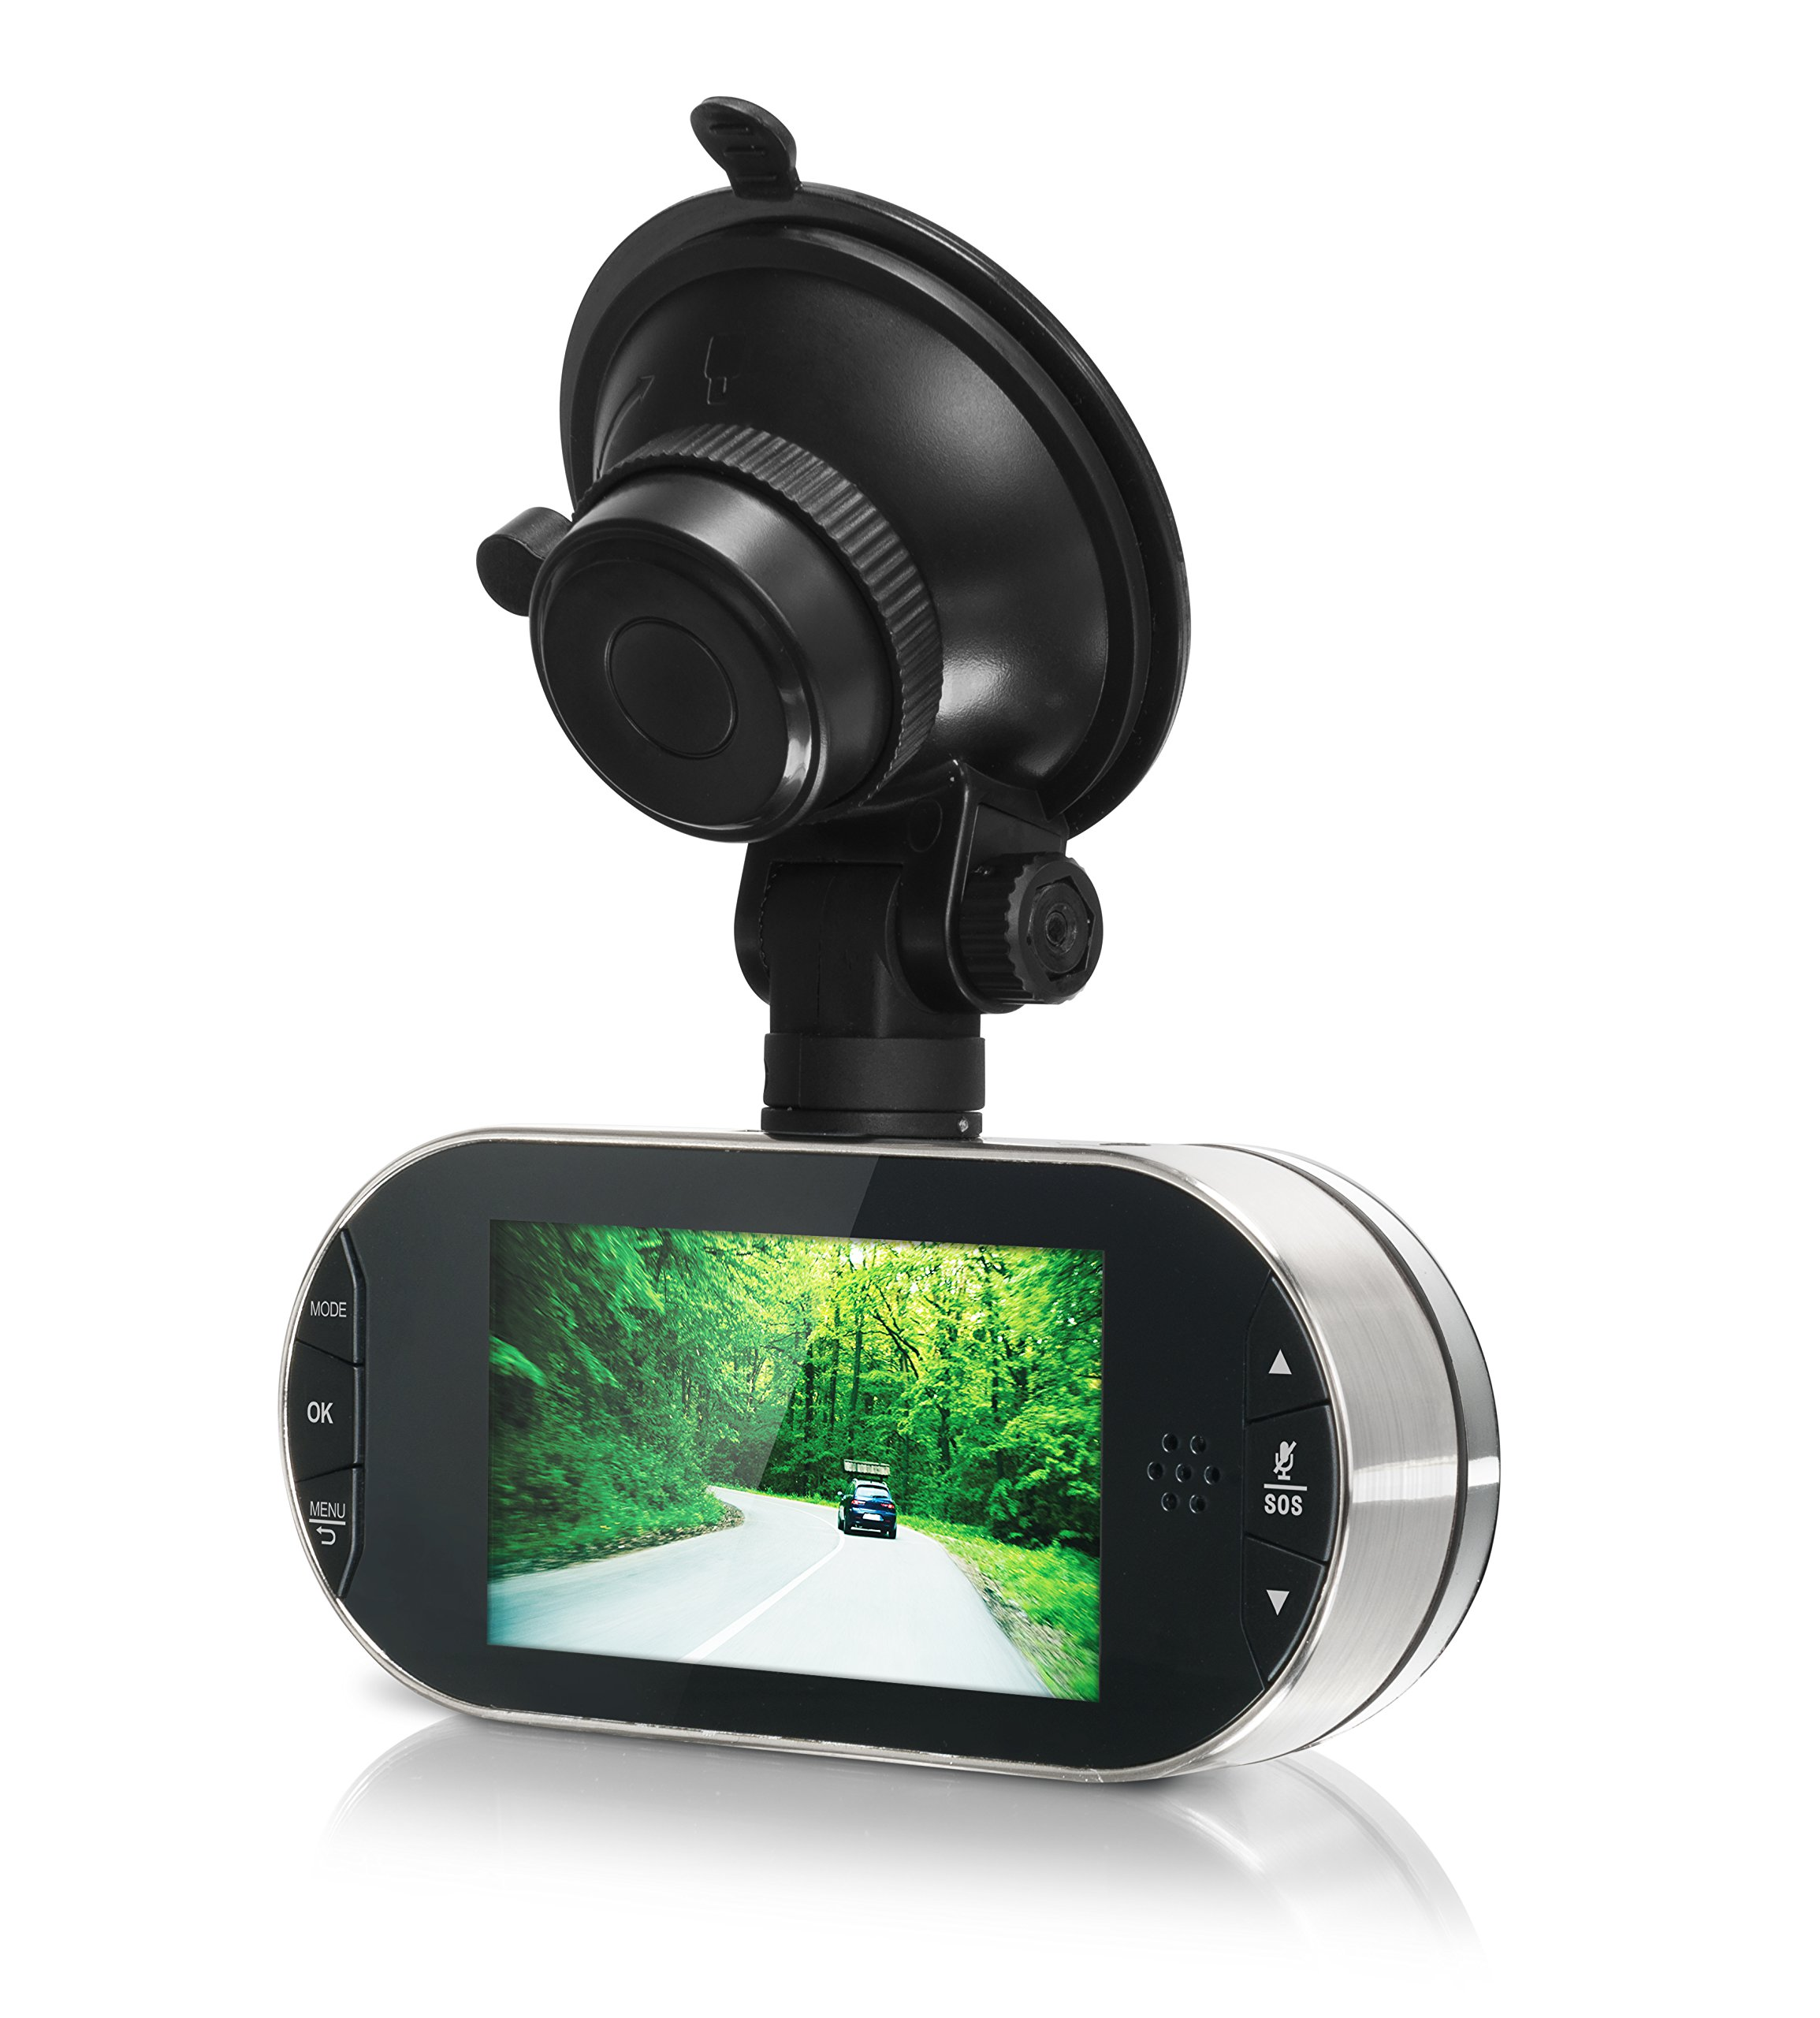 Motorola-MDC-100-Dash-Cam-Auto-Dashkamera-Full-HD-Video-loop-mit-2-7-LCD-Display-KFZ-Kamera-mit-G-Sensor